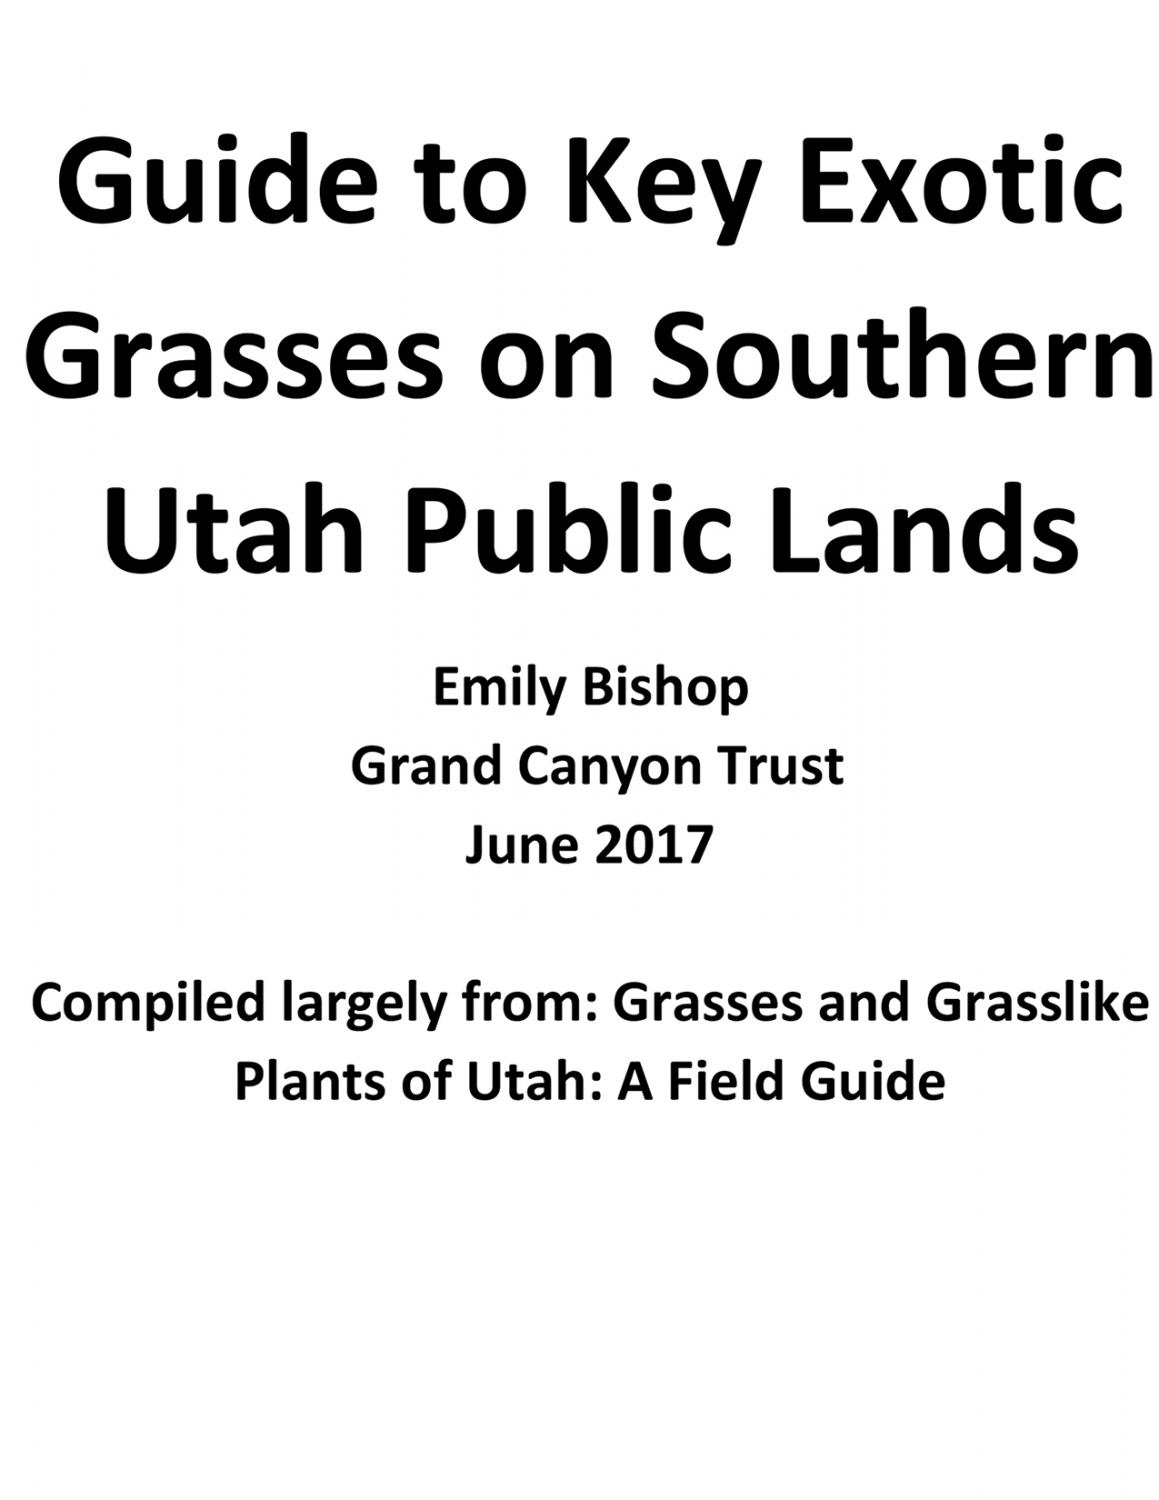 Exotic Grasses Guidebook